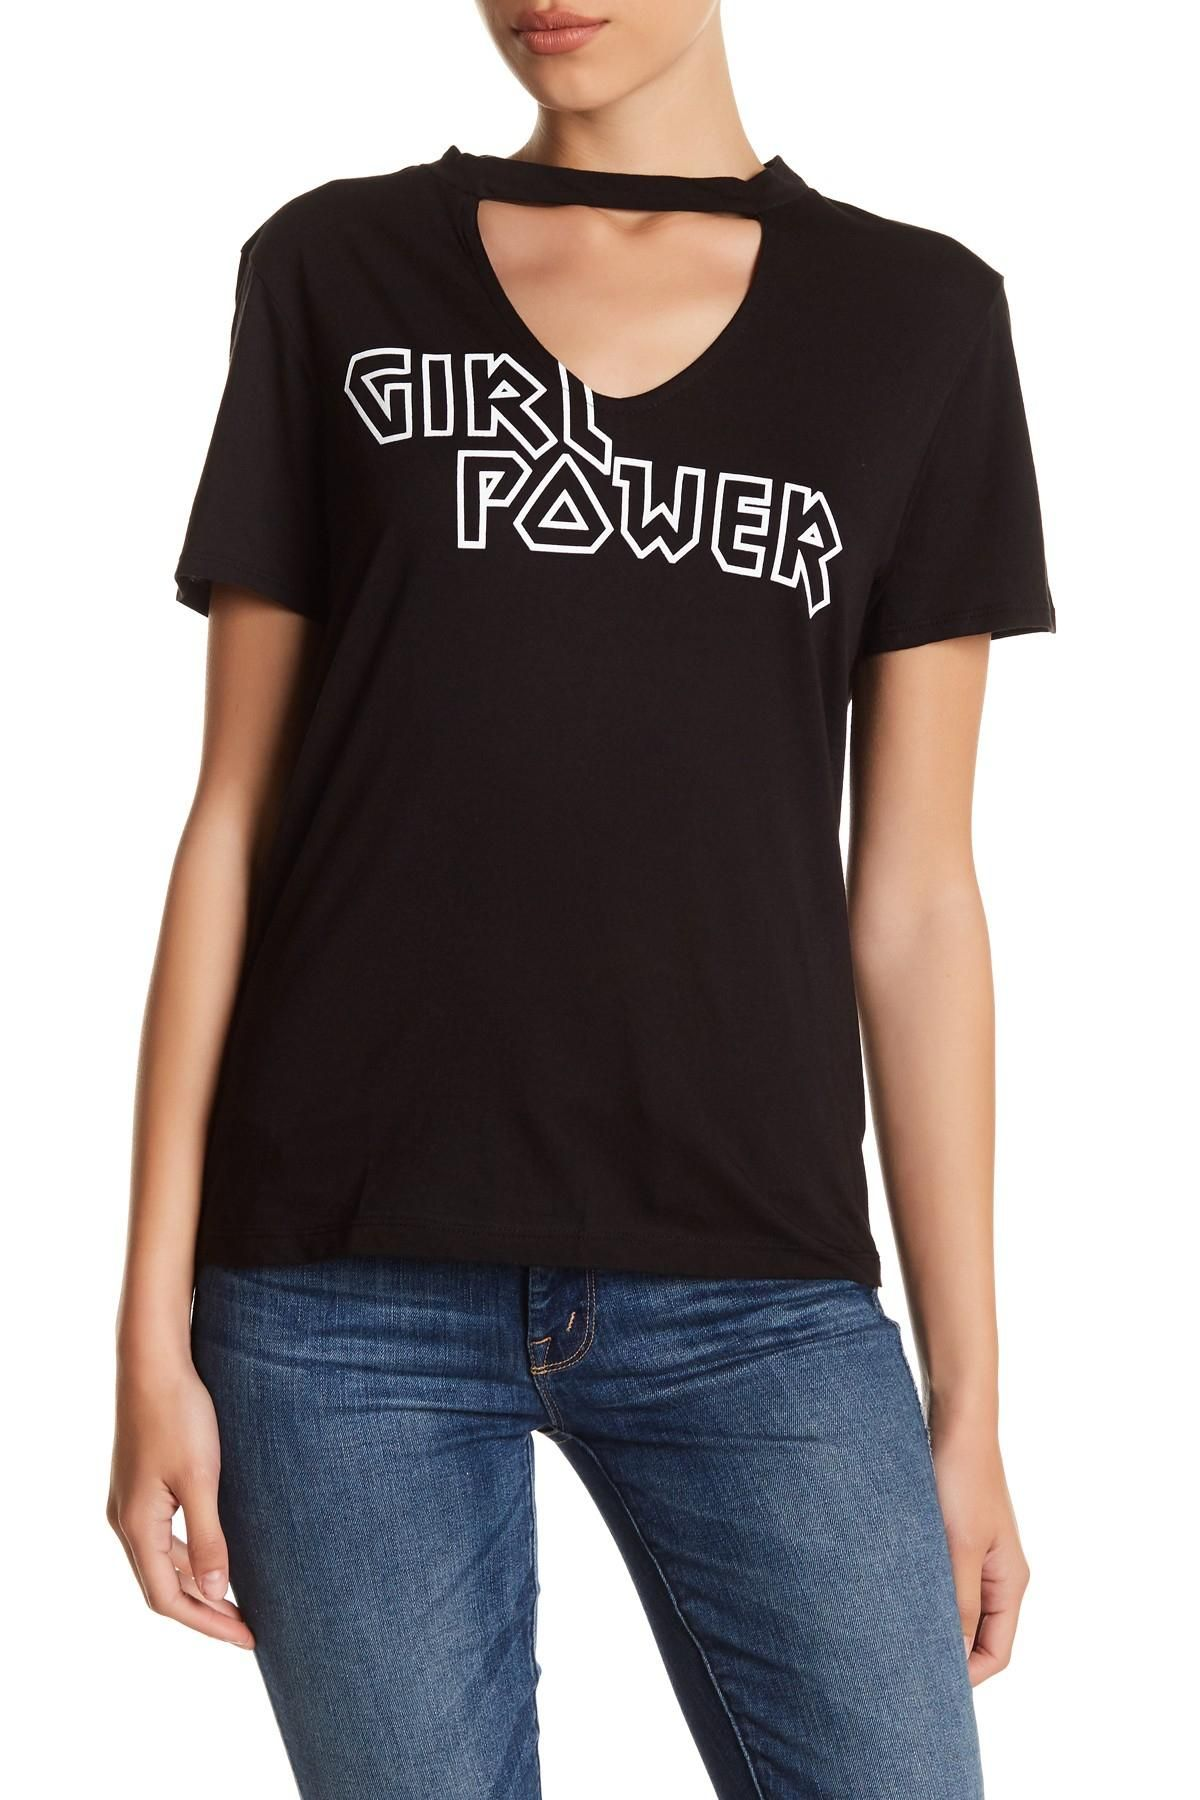 eb8a31aa324fc9 Rebellious One Girl Power Keyhole Tee M T Shirt. Free shipping and  guaranteed authenticity on Rebellious